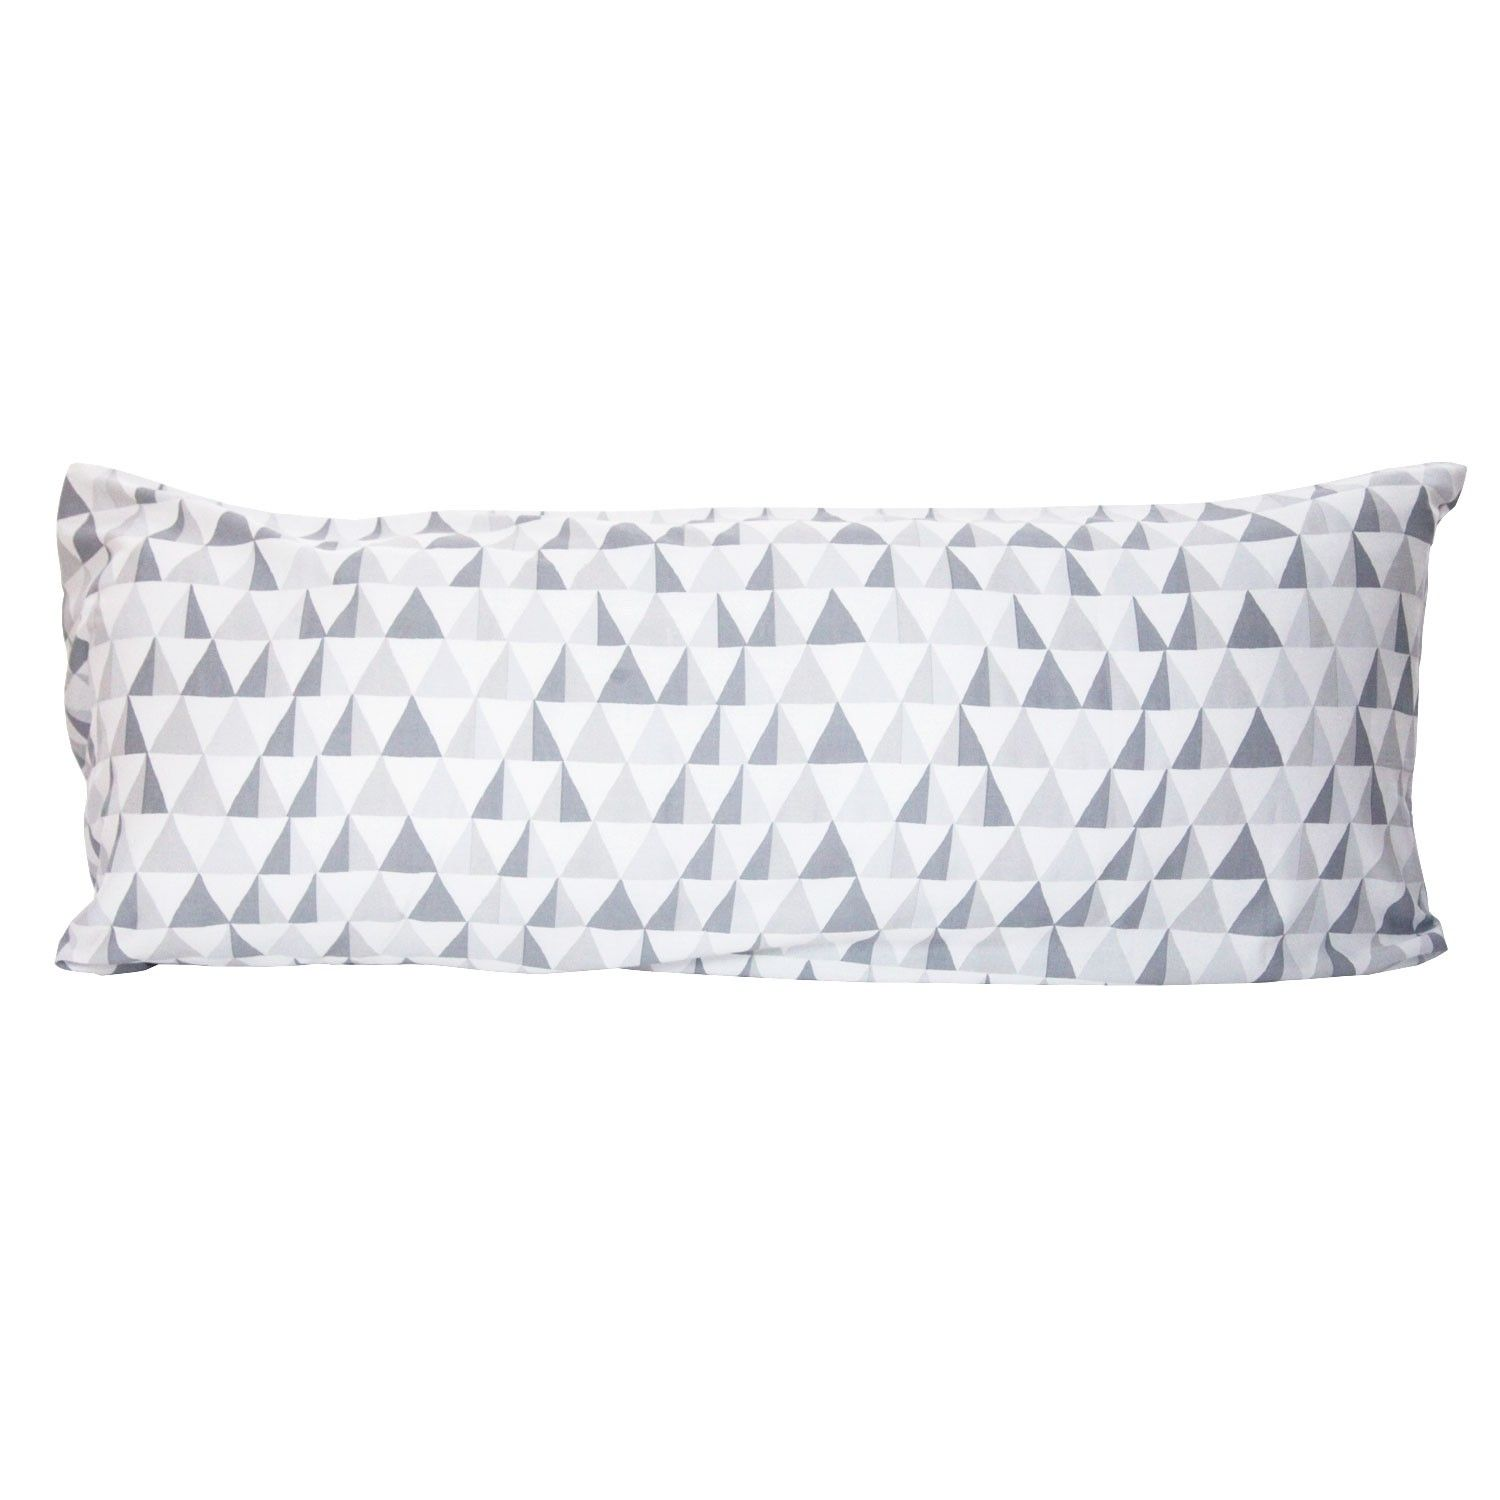 Prismatic Body Pillow Cover